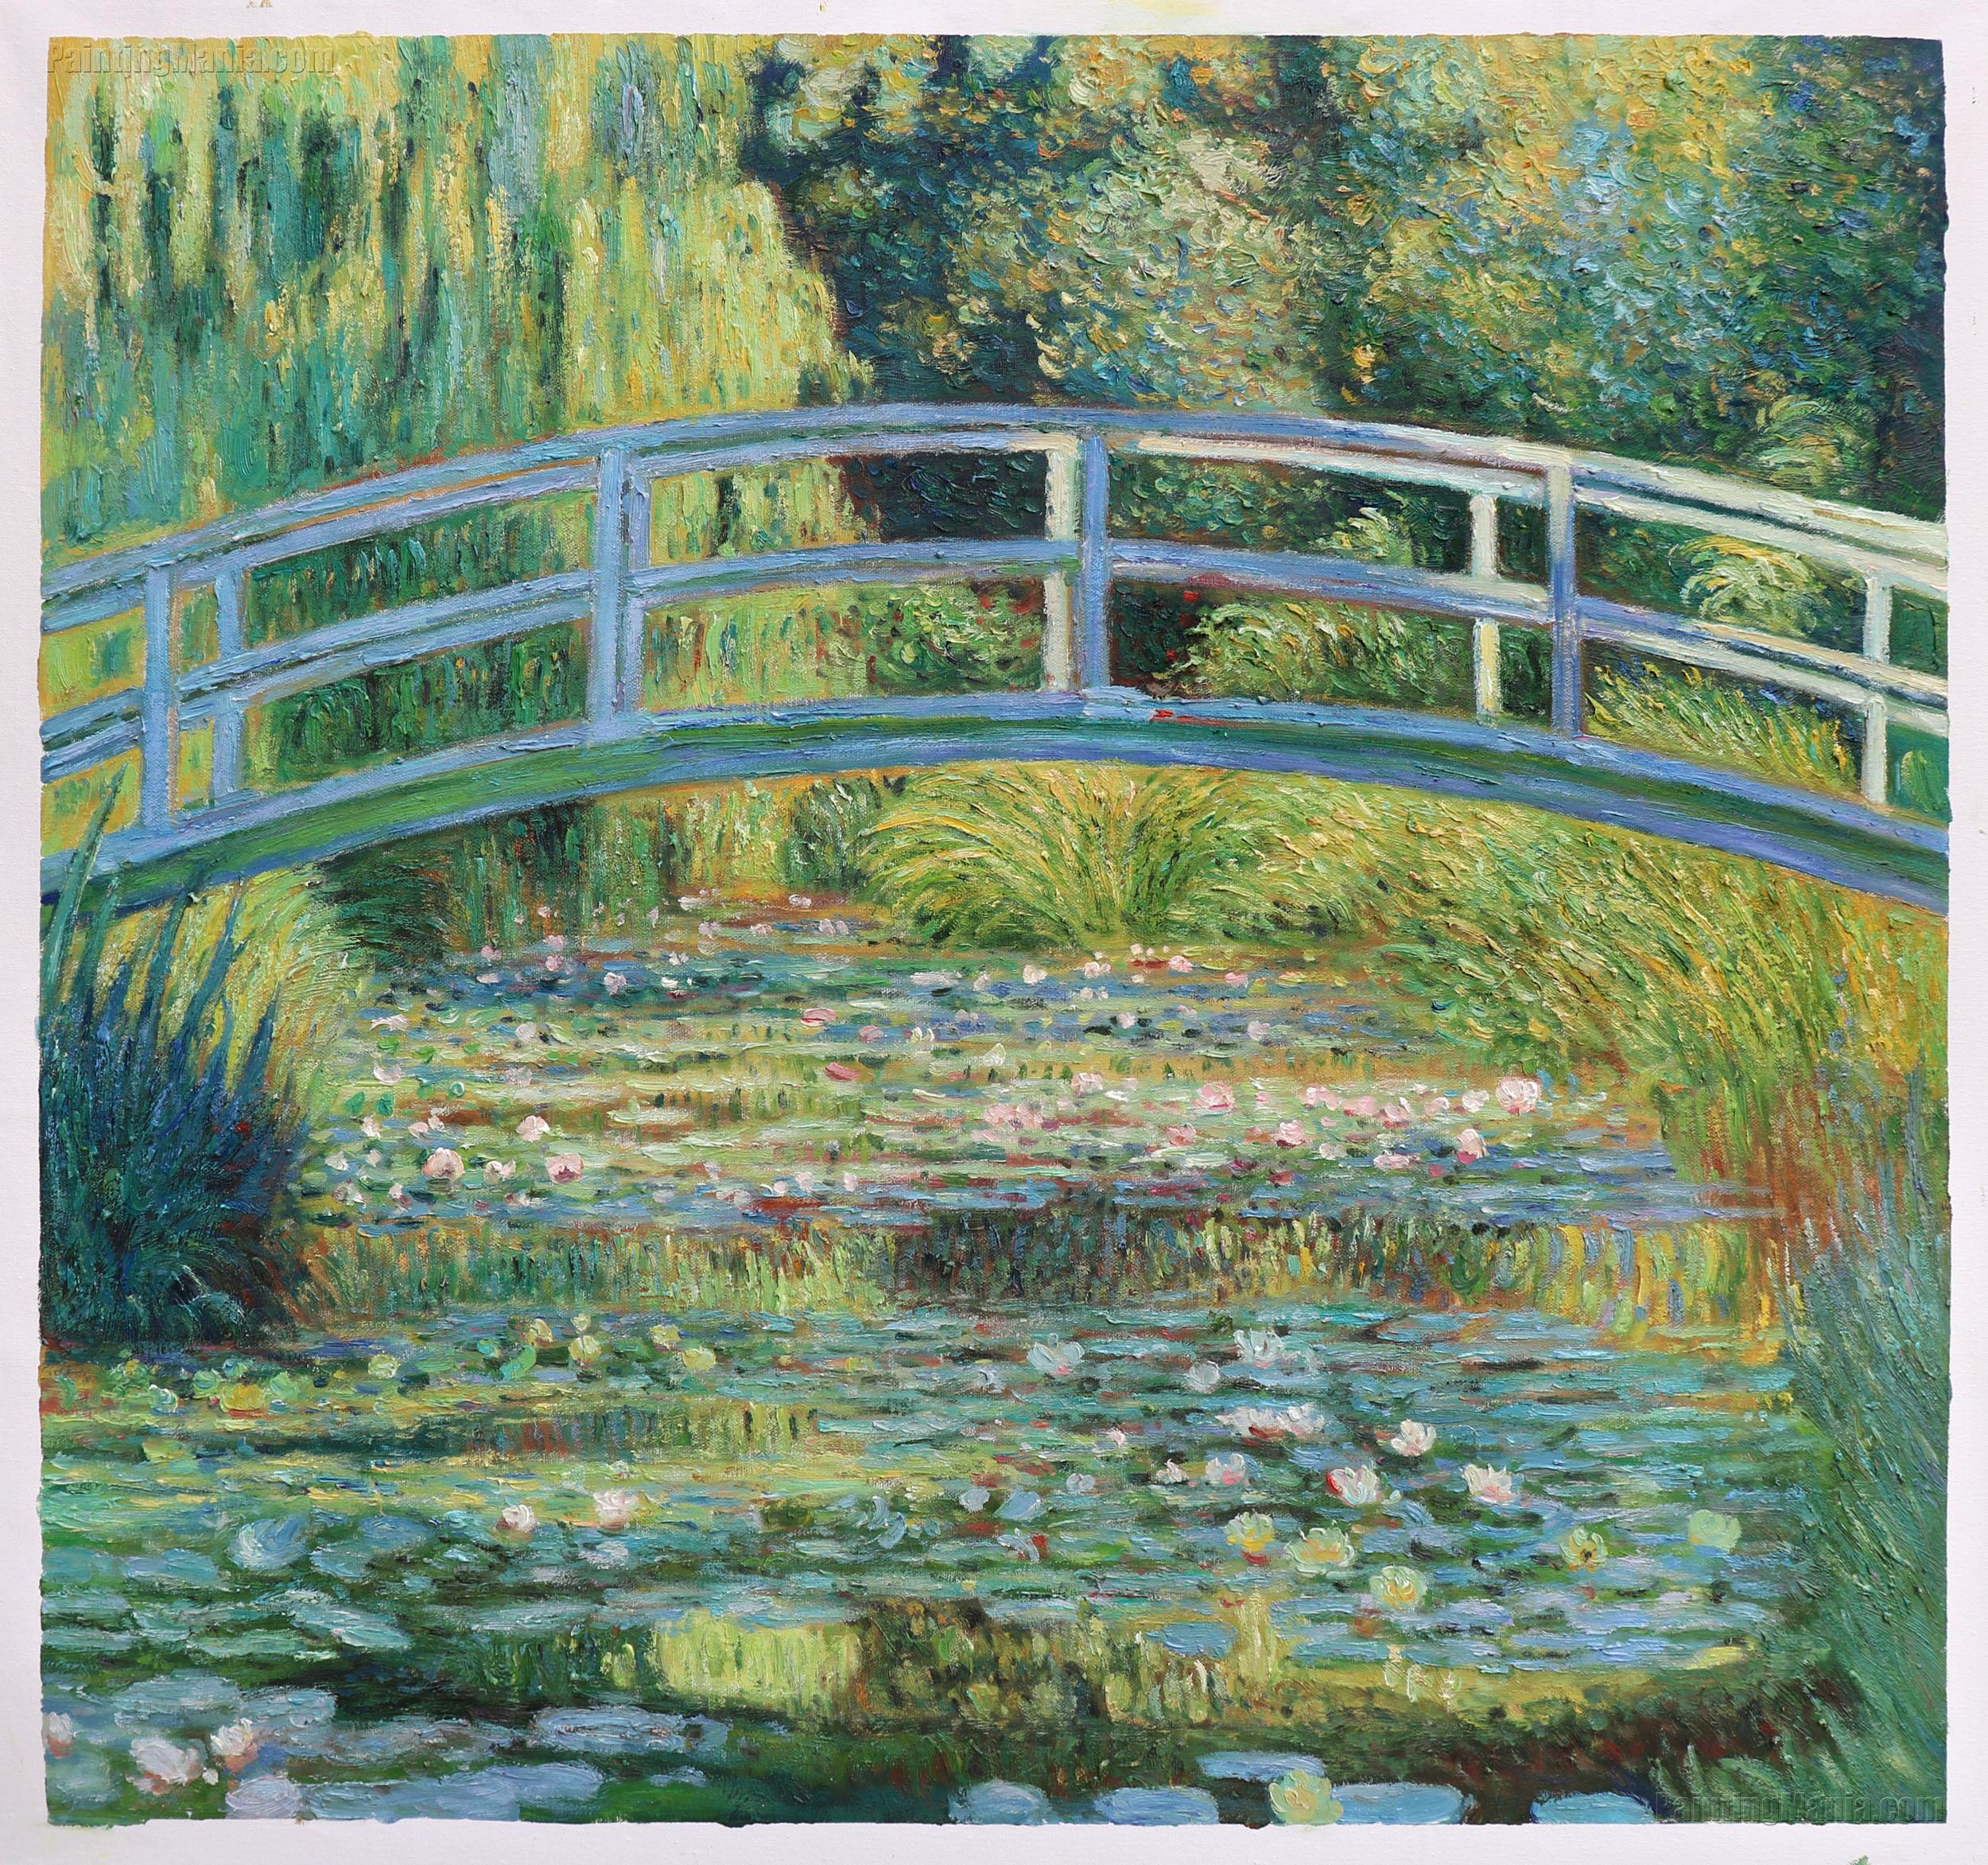 The Waterlily Pond with the Japanese Bridge